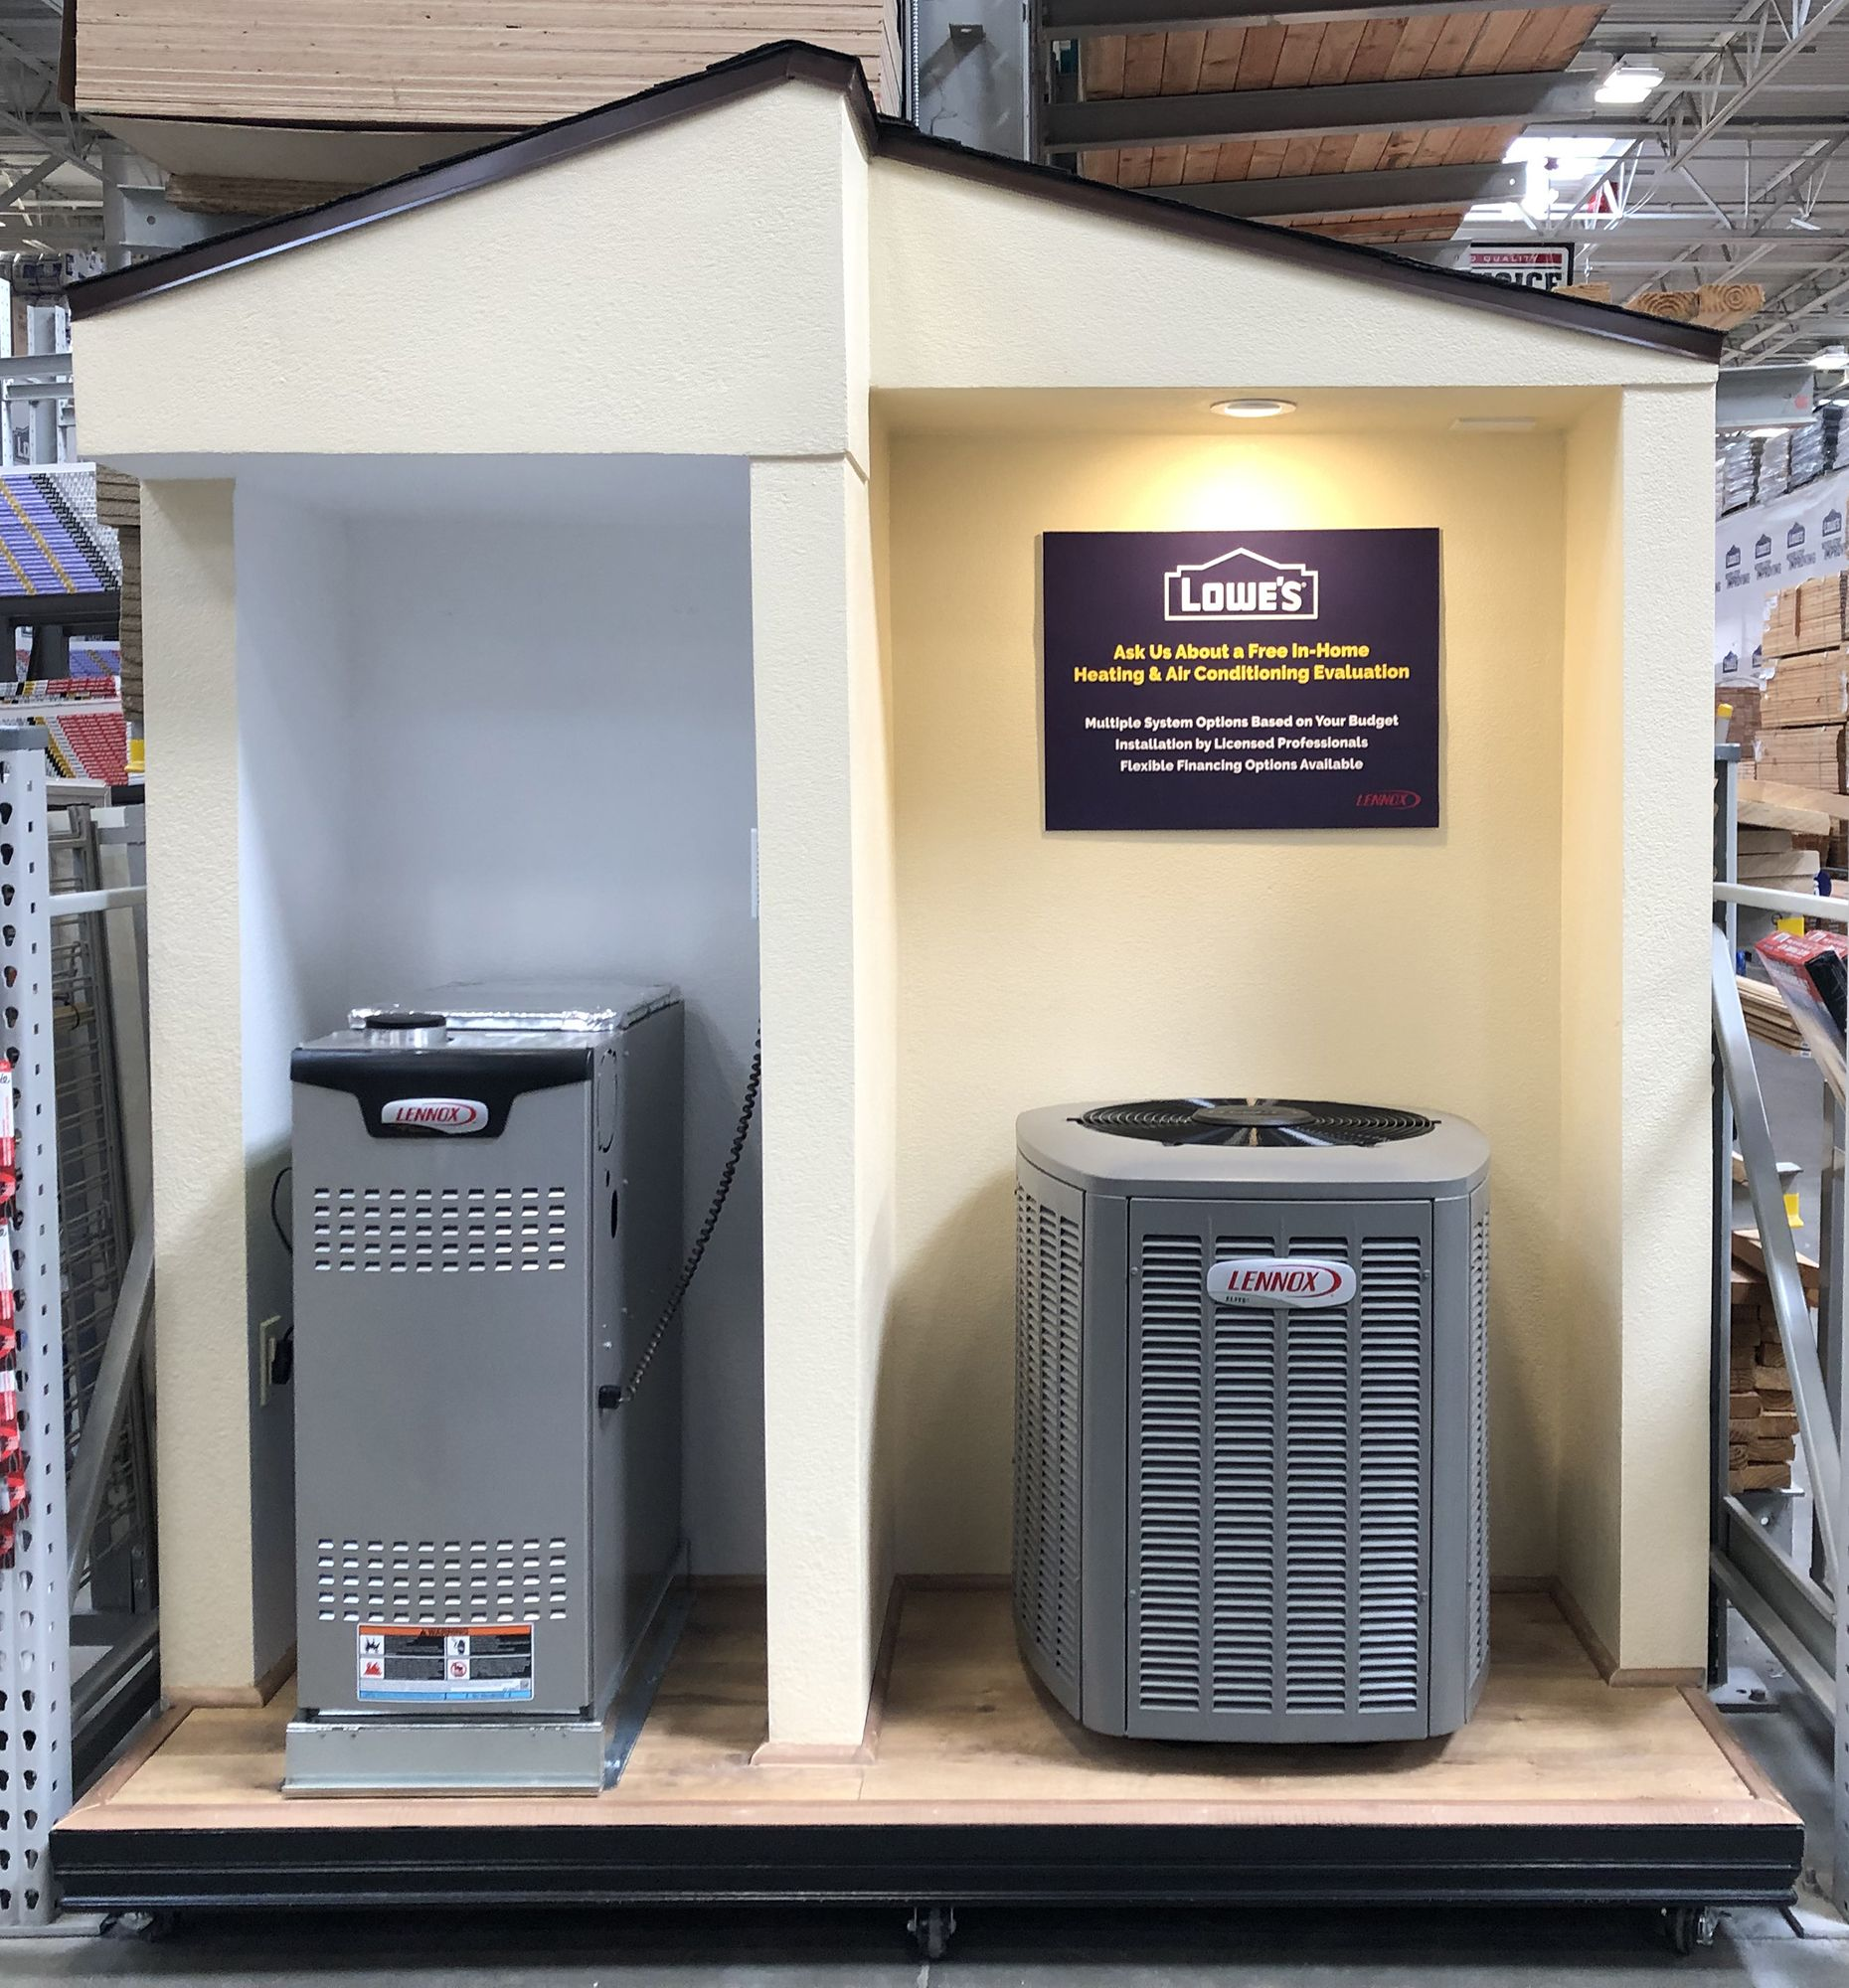 Have You Seen Our New Display At Lowe S Visit Us Today 155 Old Grove Road Oceanside 1800anytyme Plumber Plumbing Heating Air Air Heating Plumbing Heat